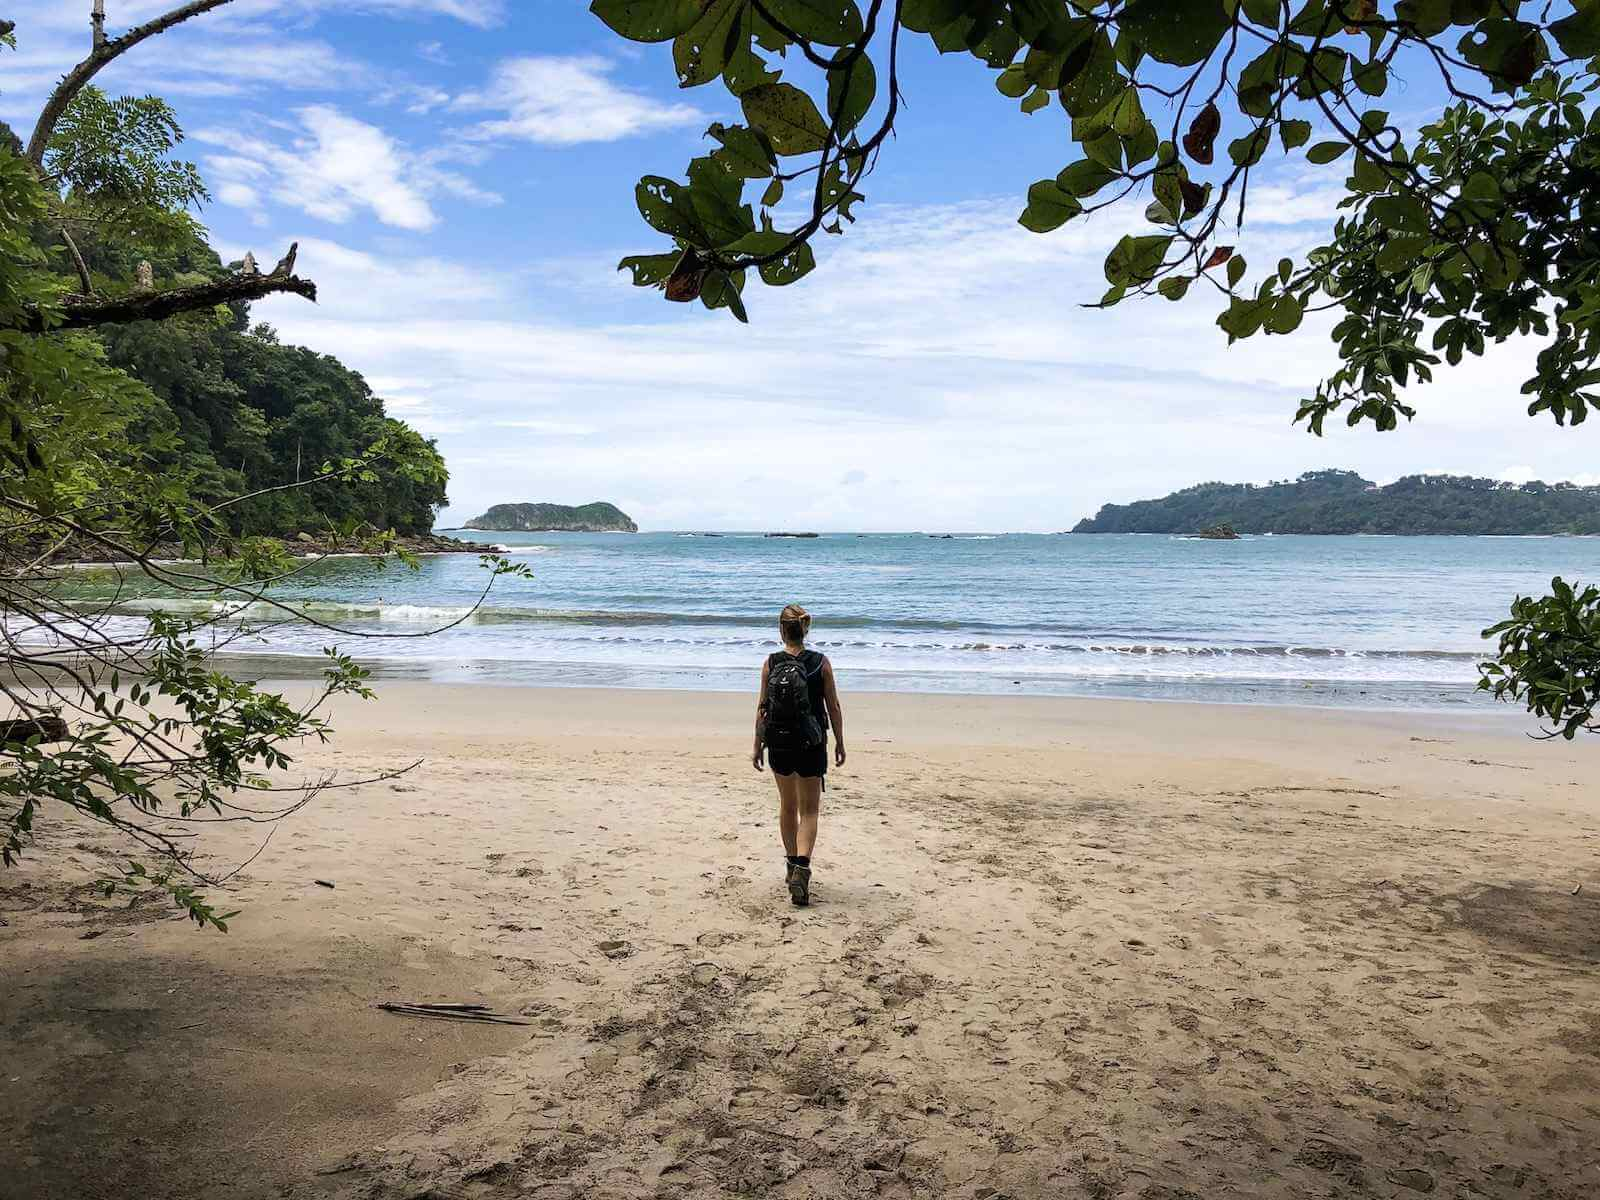 Playa Espedilla Sur Manuel Antonio National Park